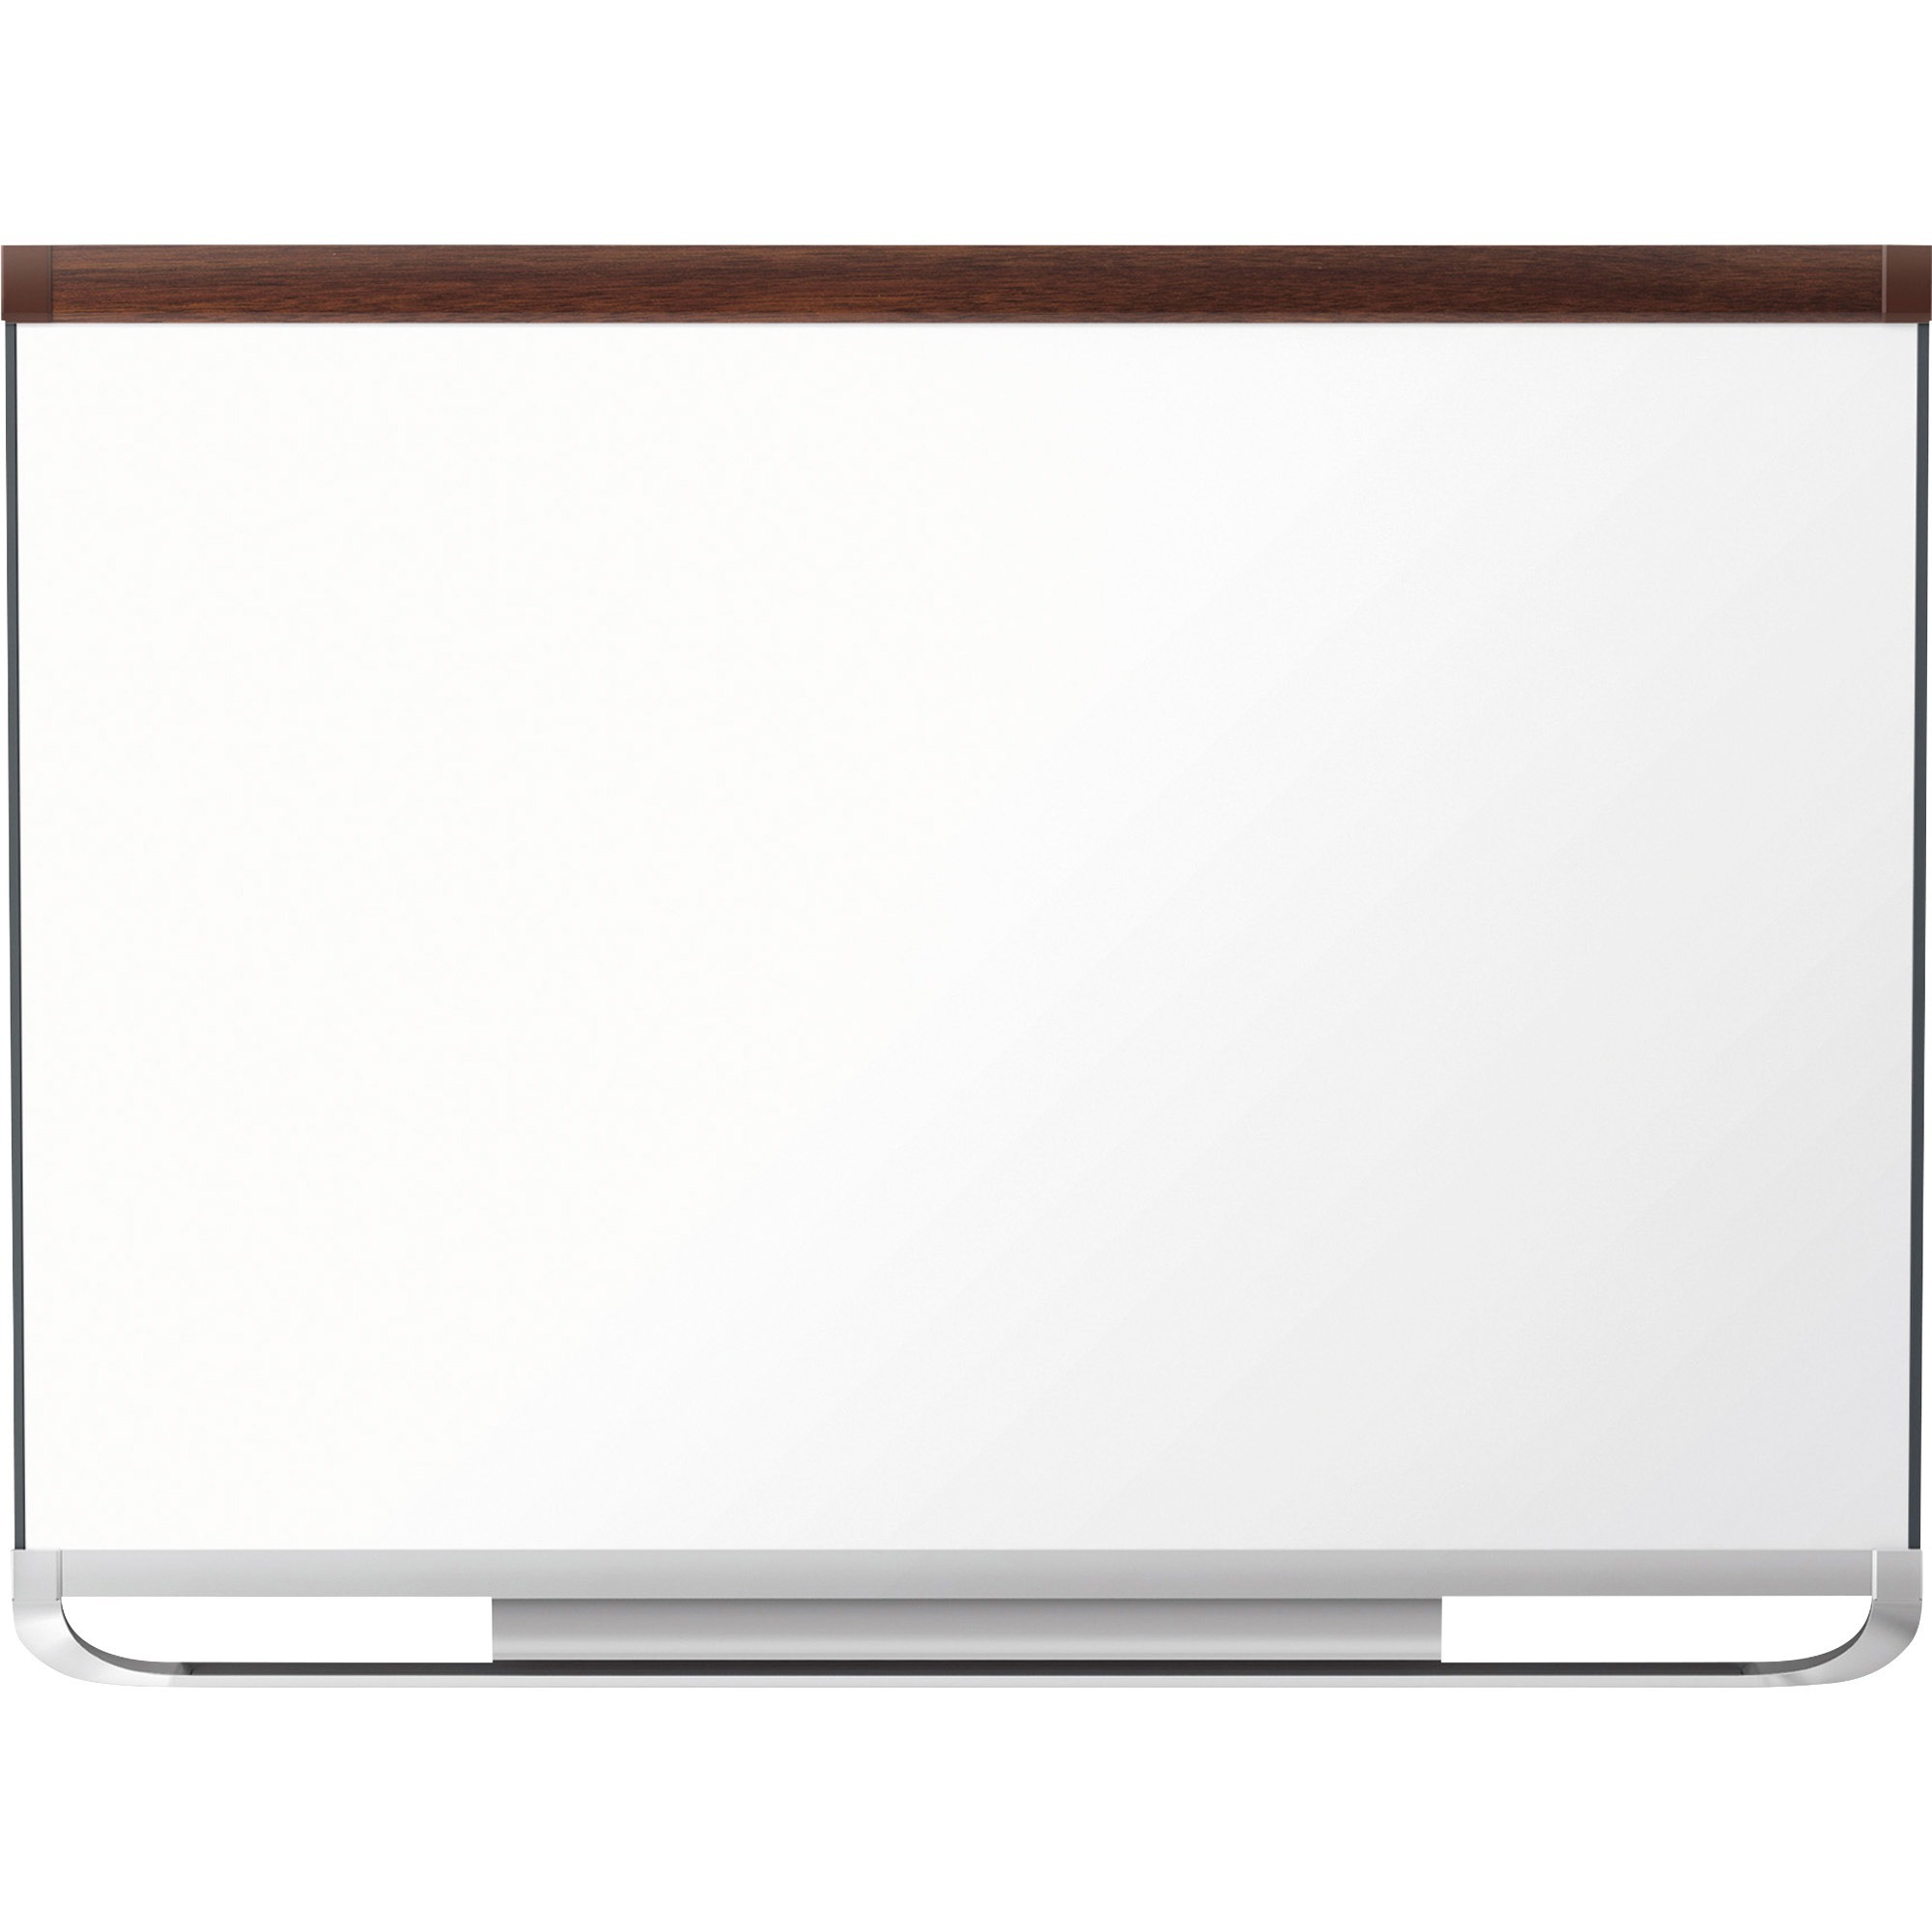 Acco Brands Corporation Quartet® Prestige® 2 Duramax® Porcelain Magnetic Whiteboard, 4 X 3, Mahogany Finish Frame - 48 (4 Ft) Width X 36 (3 Ft) Height - White Porcelain Surface - Mahogany Frame - Horizontal - 1 Each